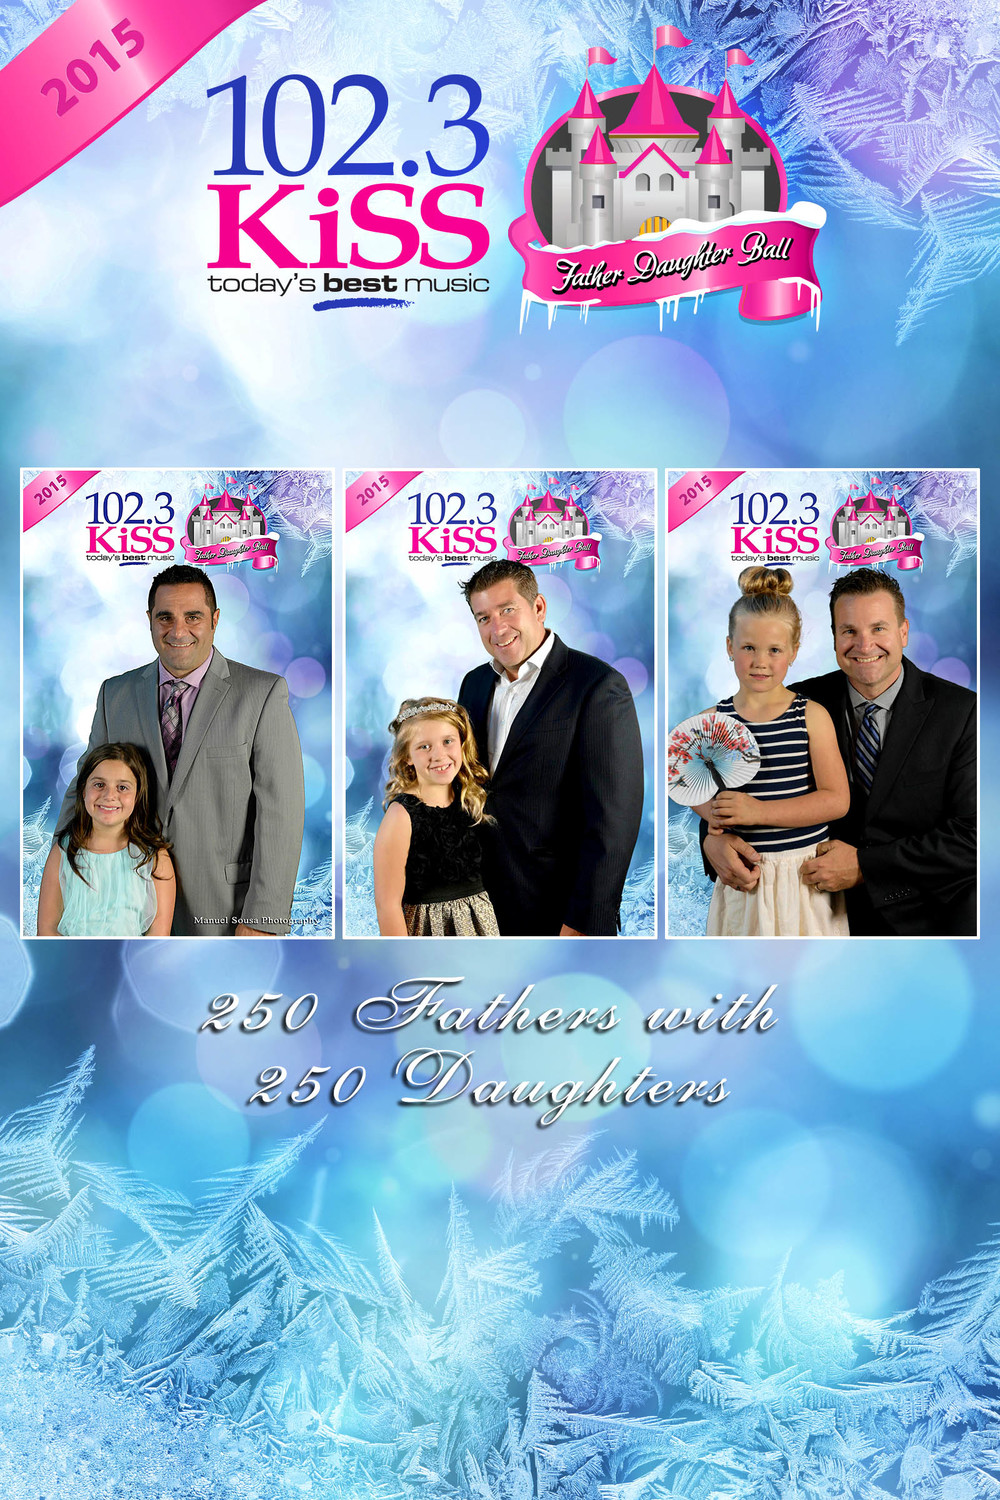 KISS 102.3 Father Daughter Ball